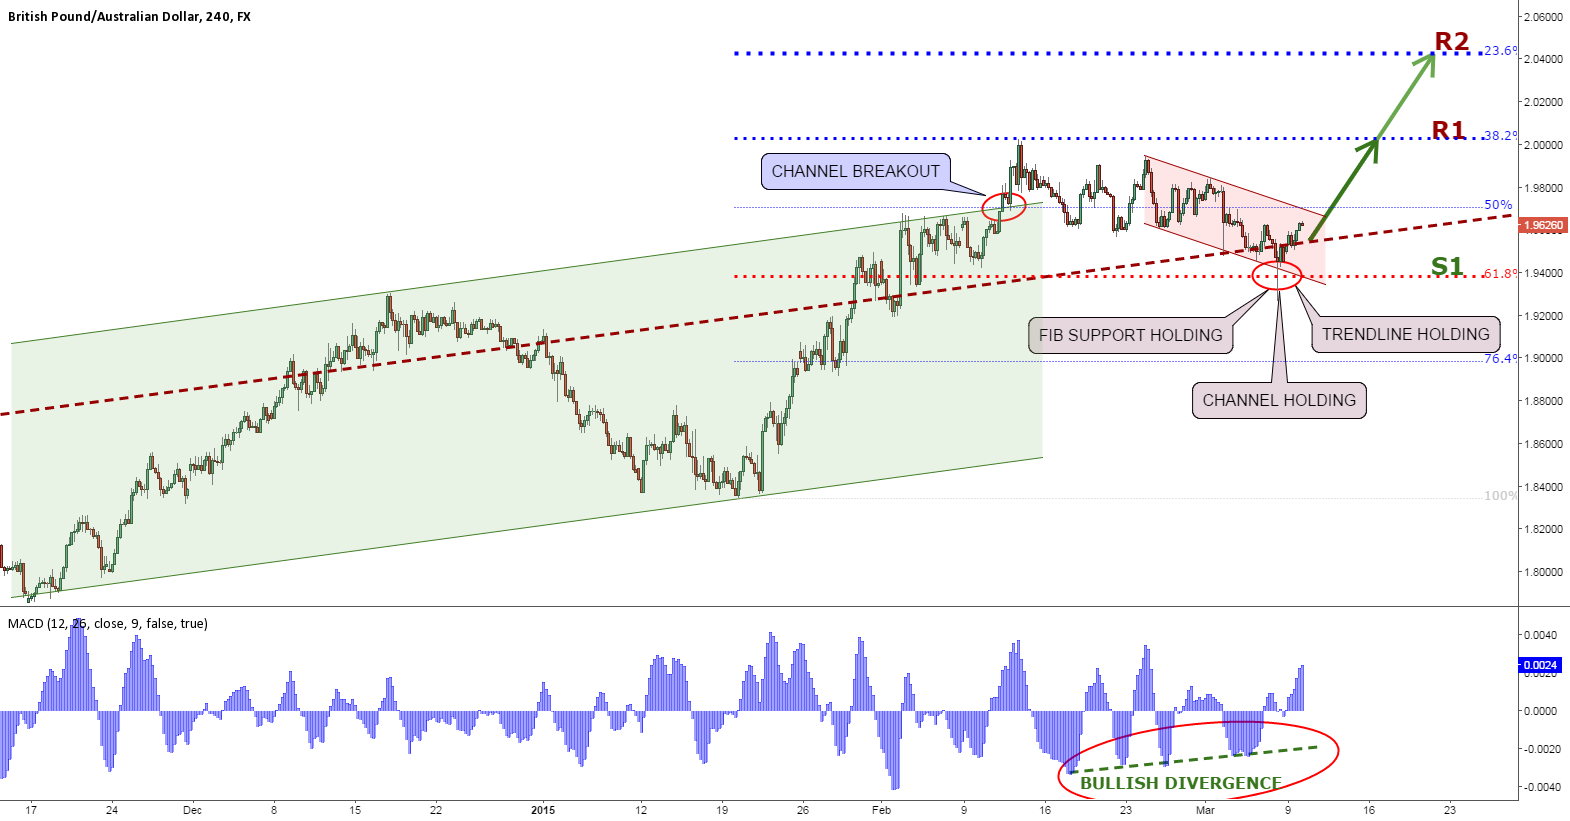 GBPAUD ABOUT TO RESUME AN UPTREND